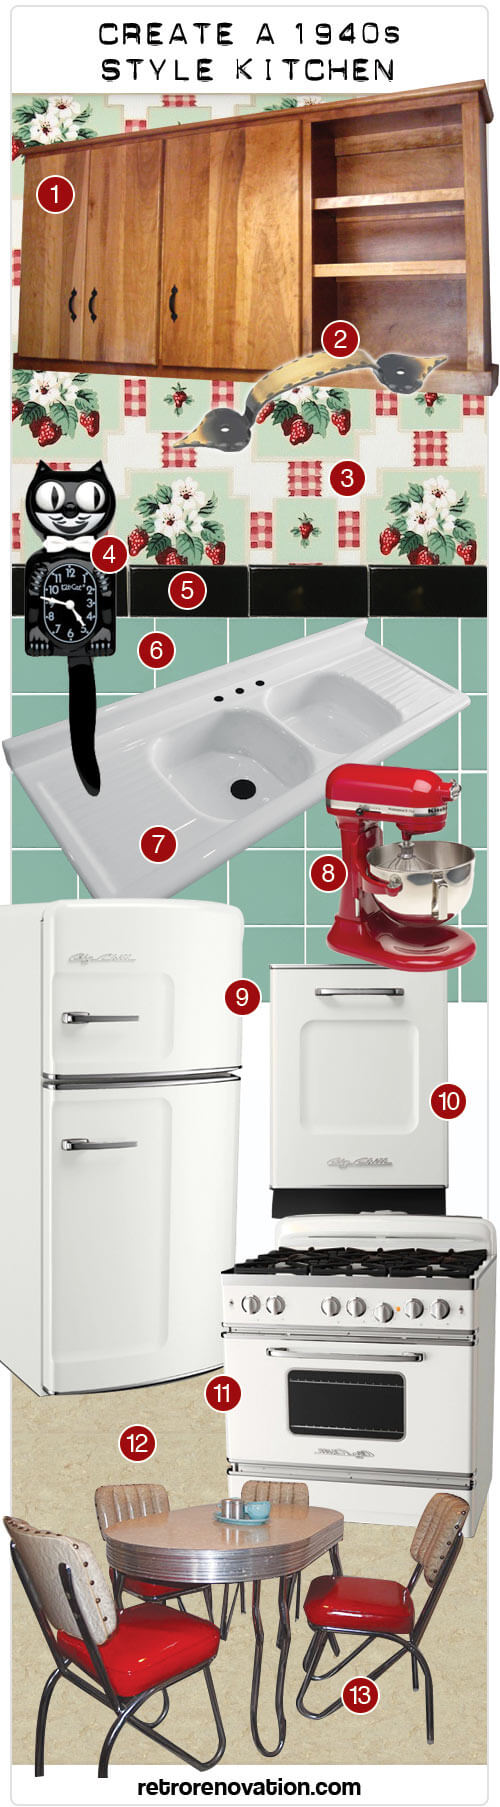 create a 1940s or early 1950s design kitchen my second